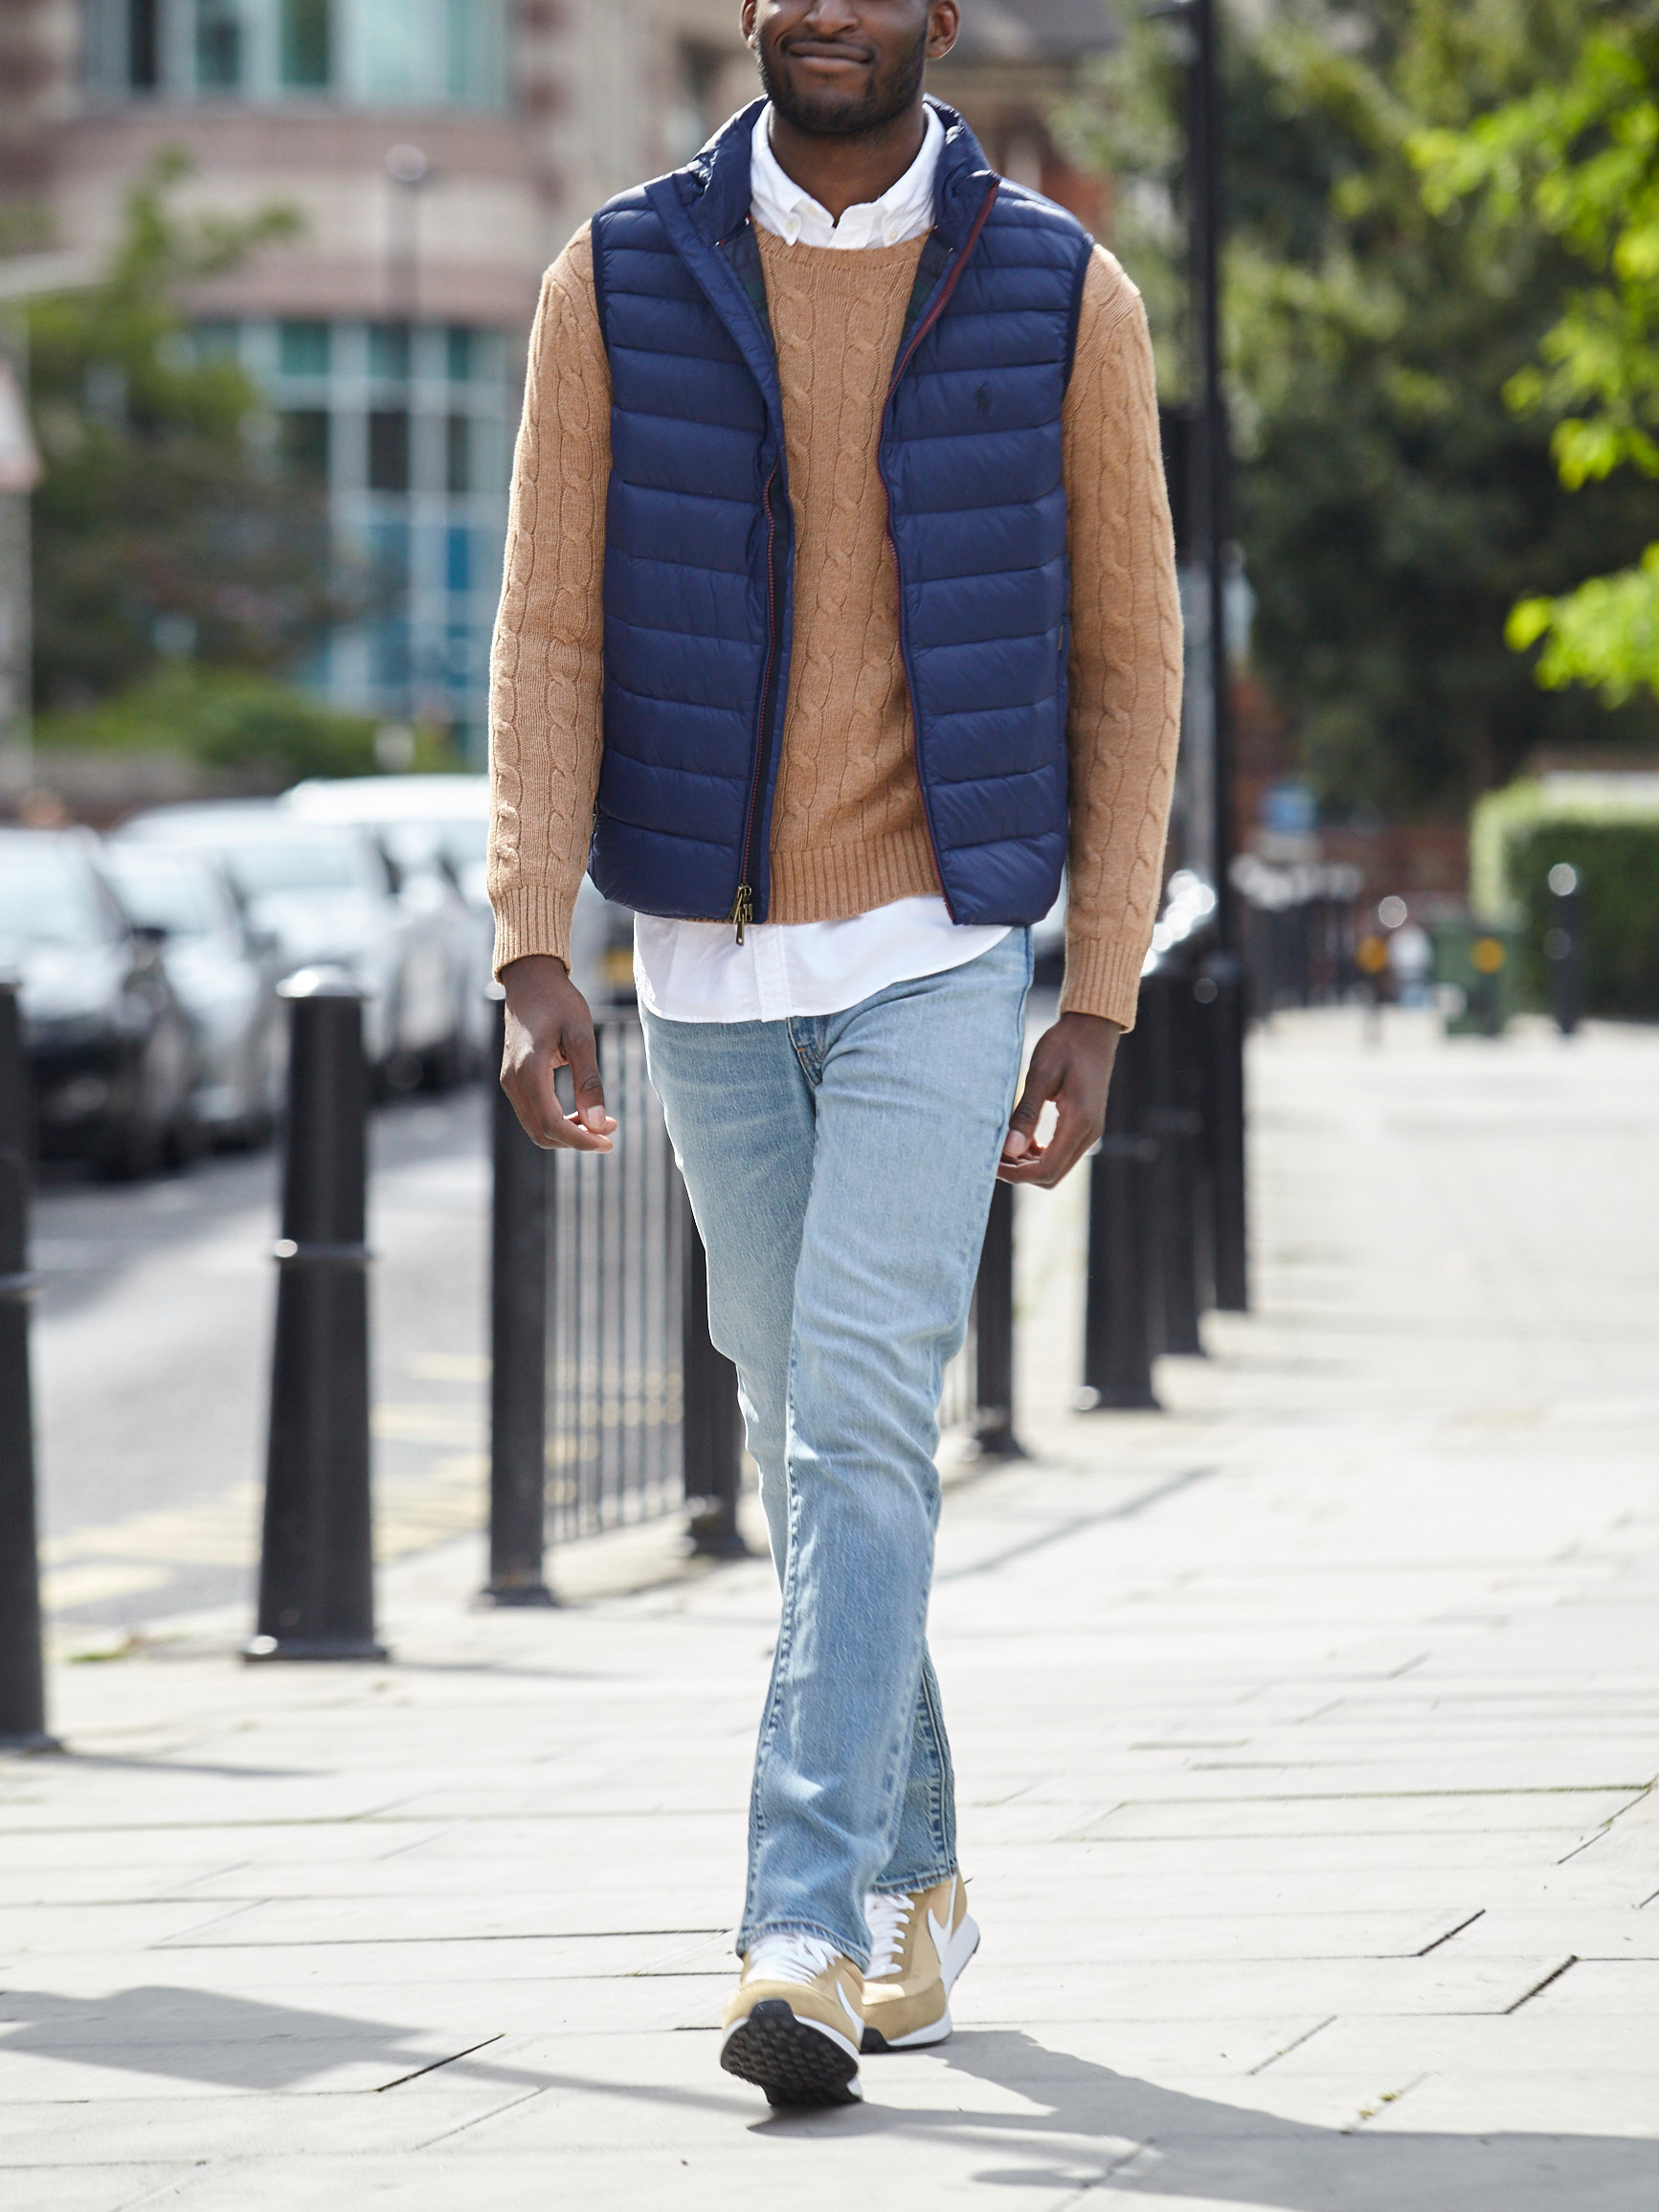 Men's outfit idea for 2021 with vest, cable-knit sweater, white casual shirt, light blue jeans, neutral sneakers. Suitable for spring and fall.